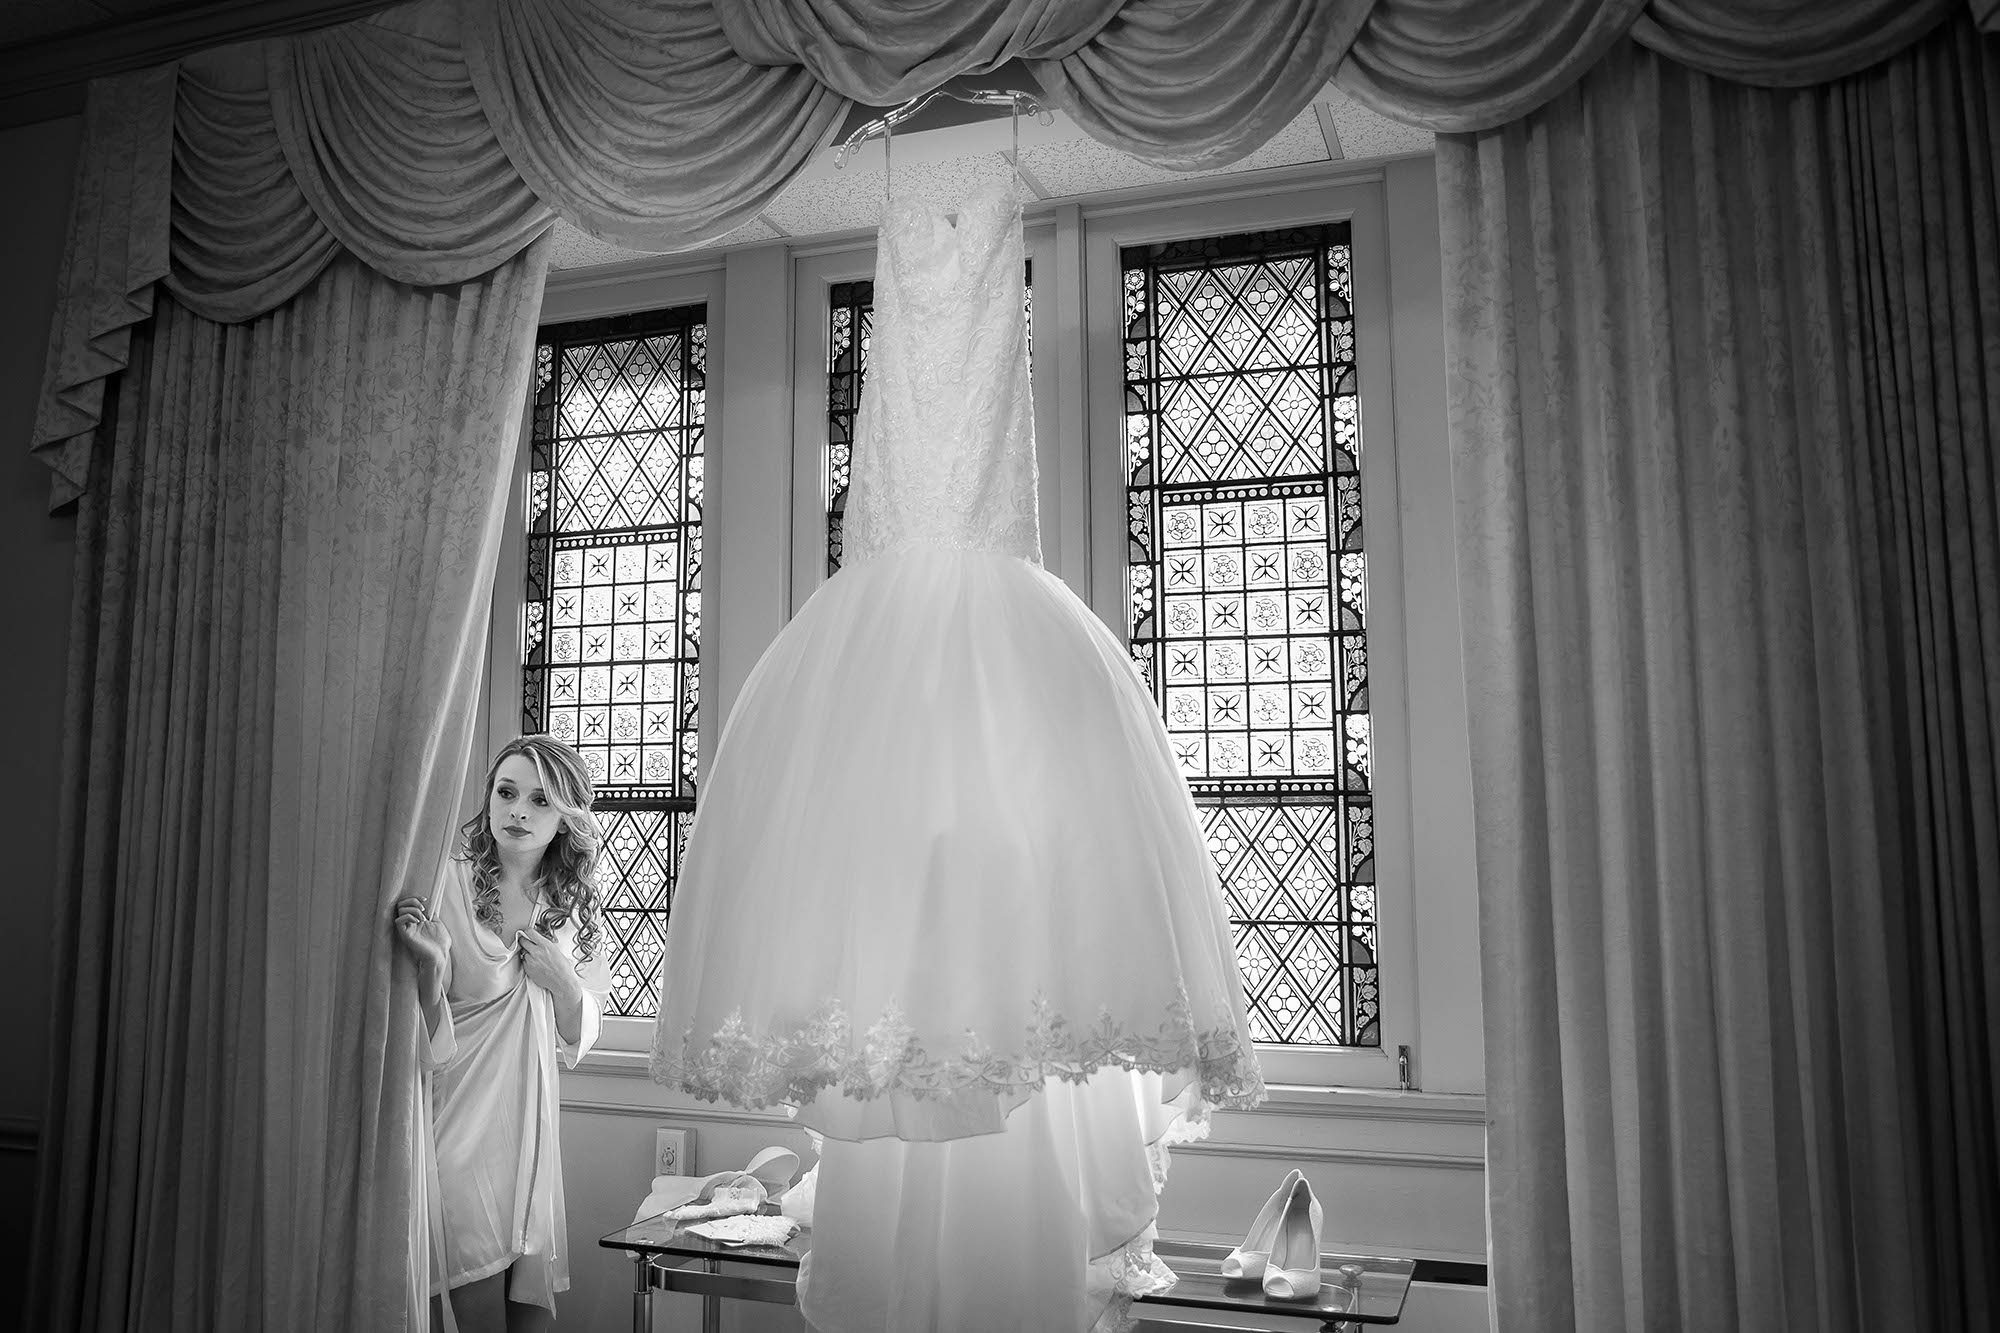 The candid moment of the bride peaking around the curtains of the stained glass window at Crossroads United Methodist Church in downtown Canton, Ohio.